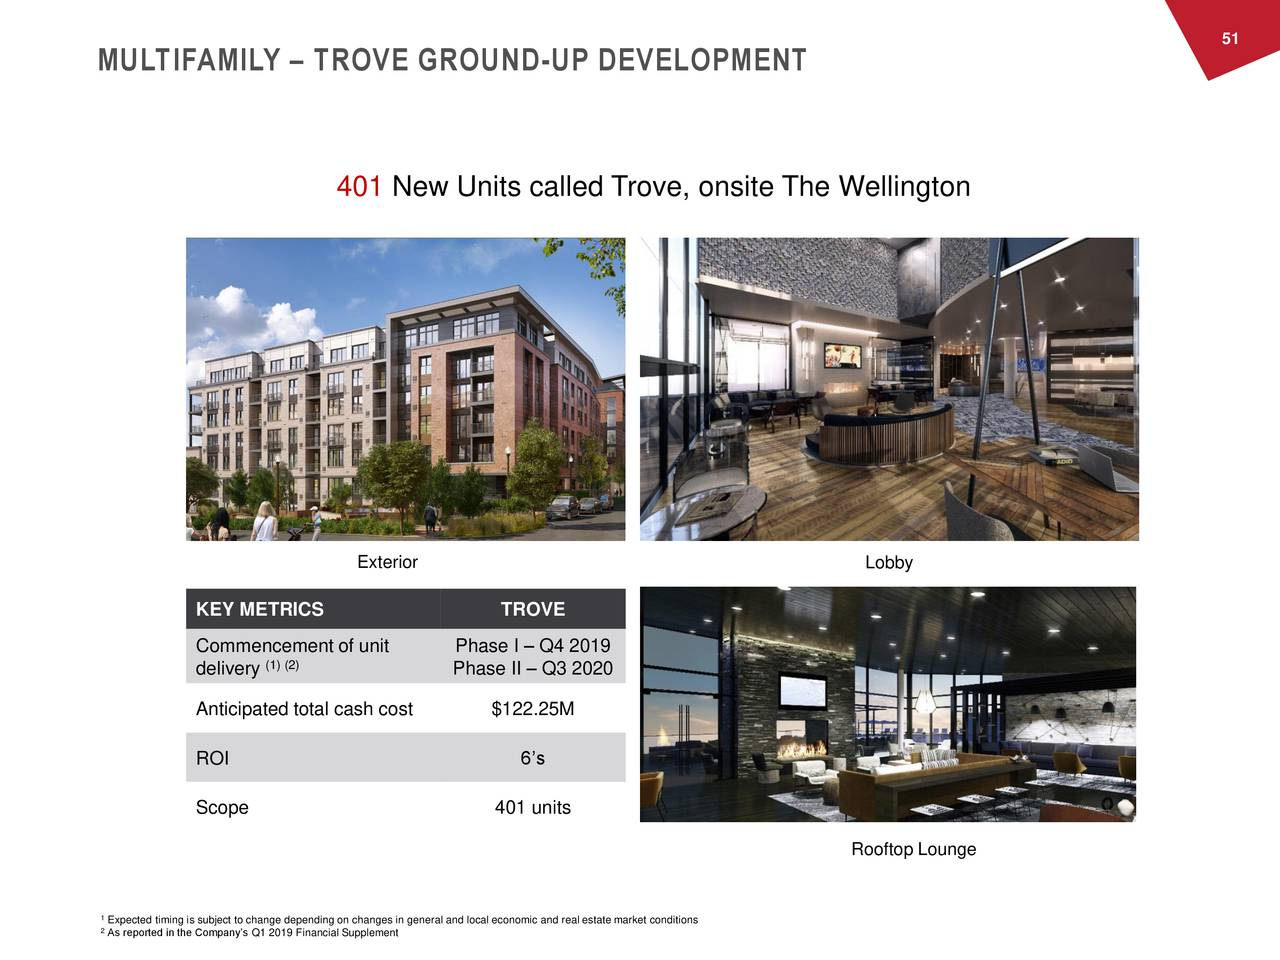 MULTIFAMILY – TROVE GROUND-UP DEVELOPMENT 401 New Units called Trove, onsite The Wellington Exterior Lobby KEY METRICS TROVE Commencement of unit Phase I – Q4 2019 (1) (2) delivery Phase II – Q3 2020 Anticipated total cash cost $122.25M ROI 6's Scope 401 units Rooftop Lounge 2Expected timing is subject to change depending on changes in general and local economic and real estate market conditions As reported in the Company's Q1 2019 Financial Supplement